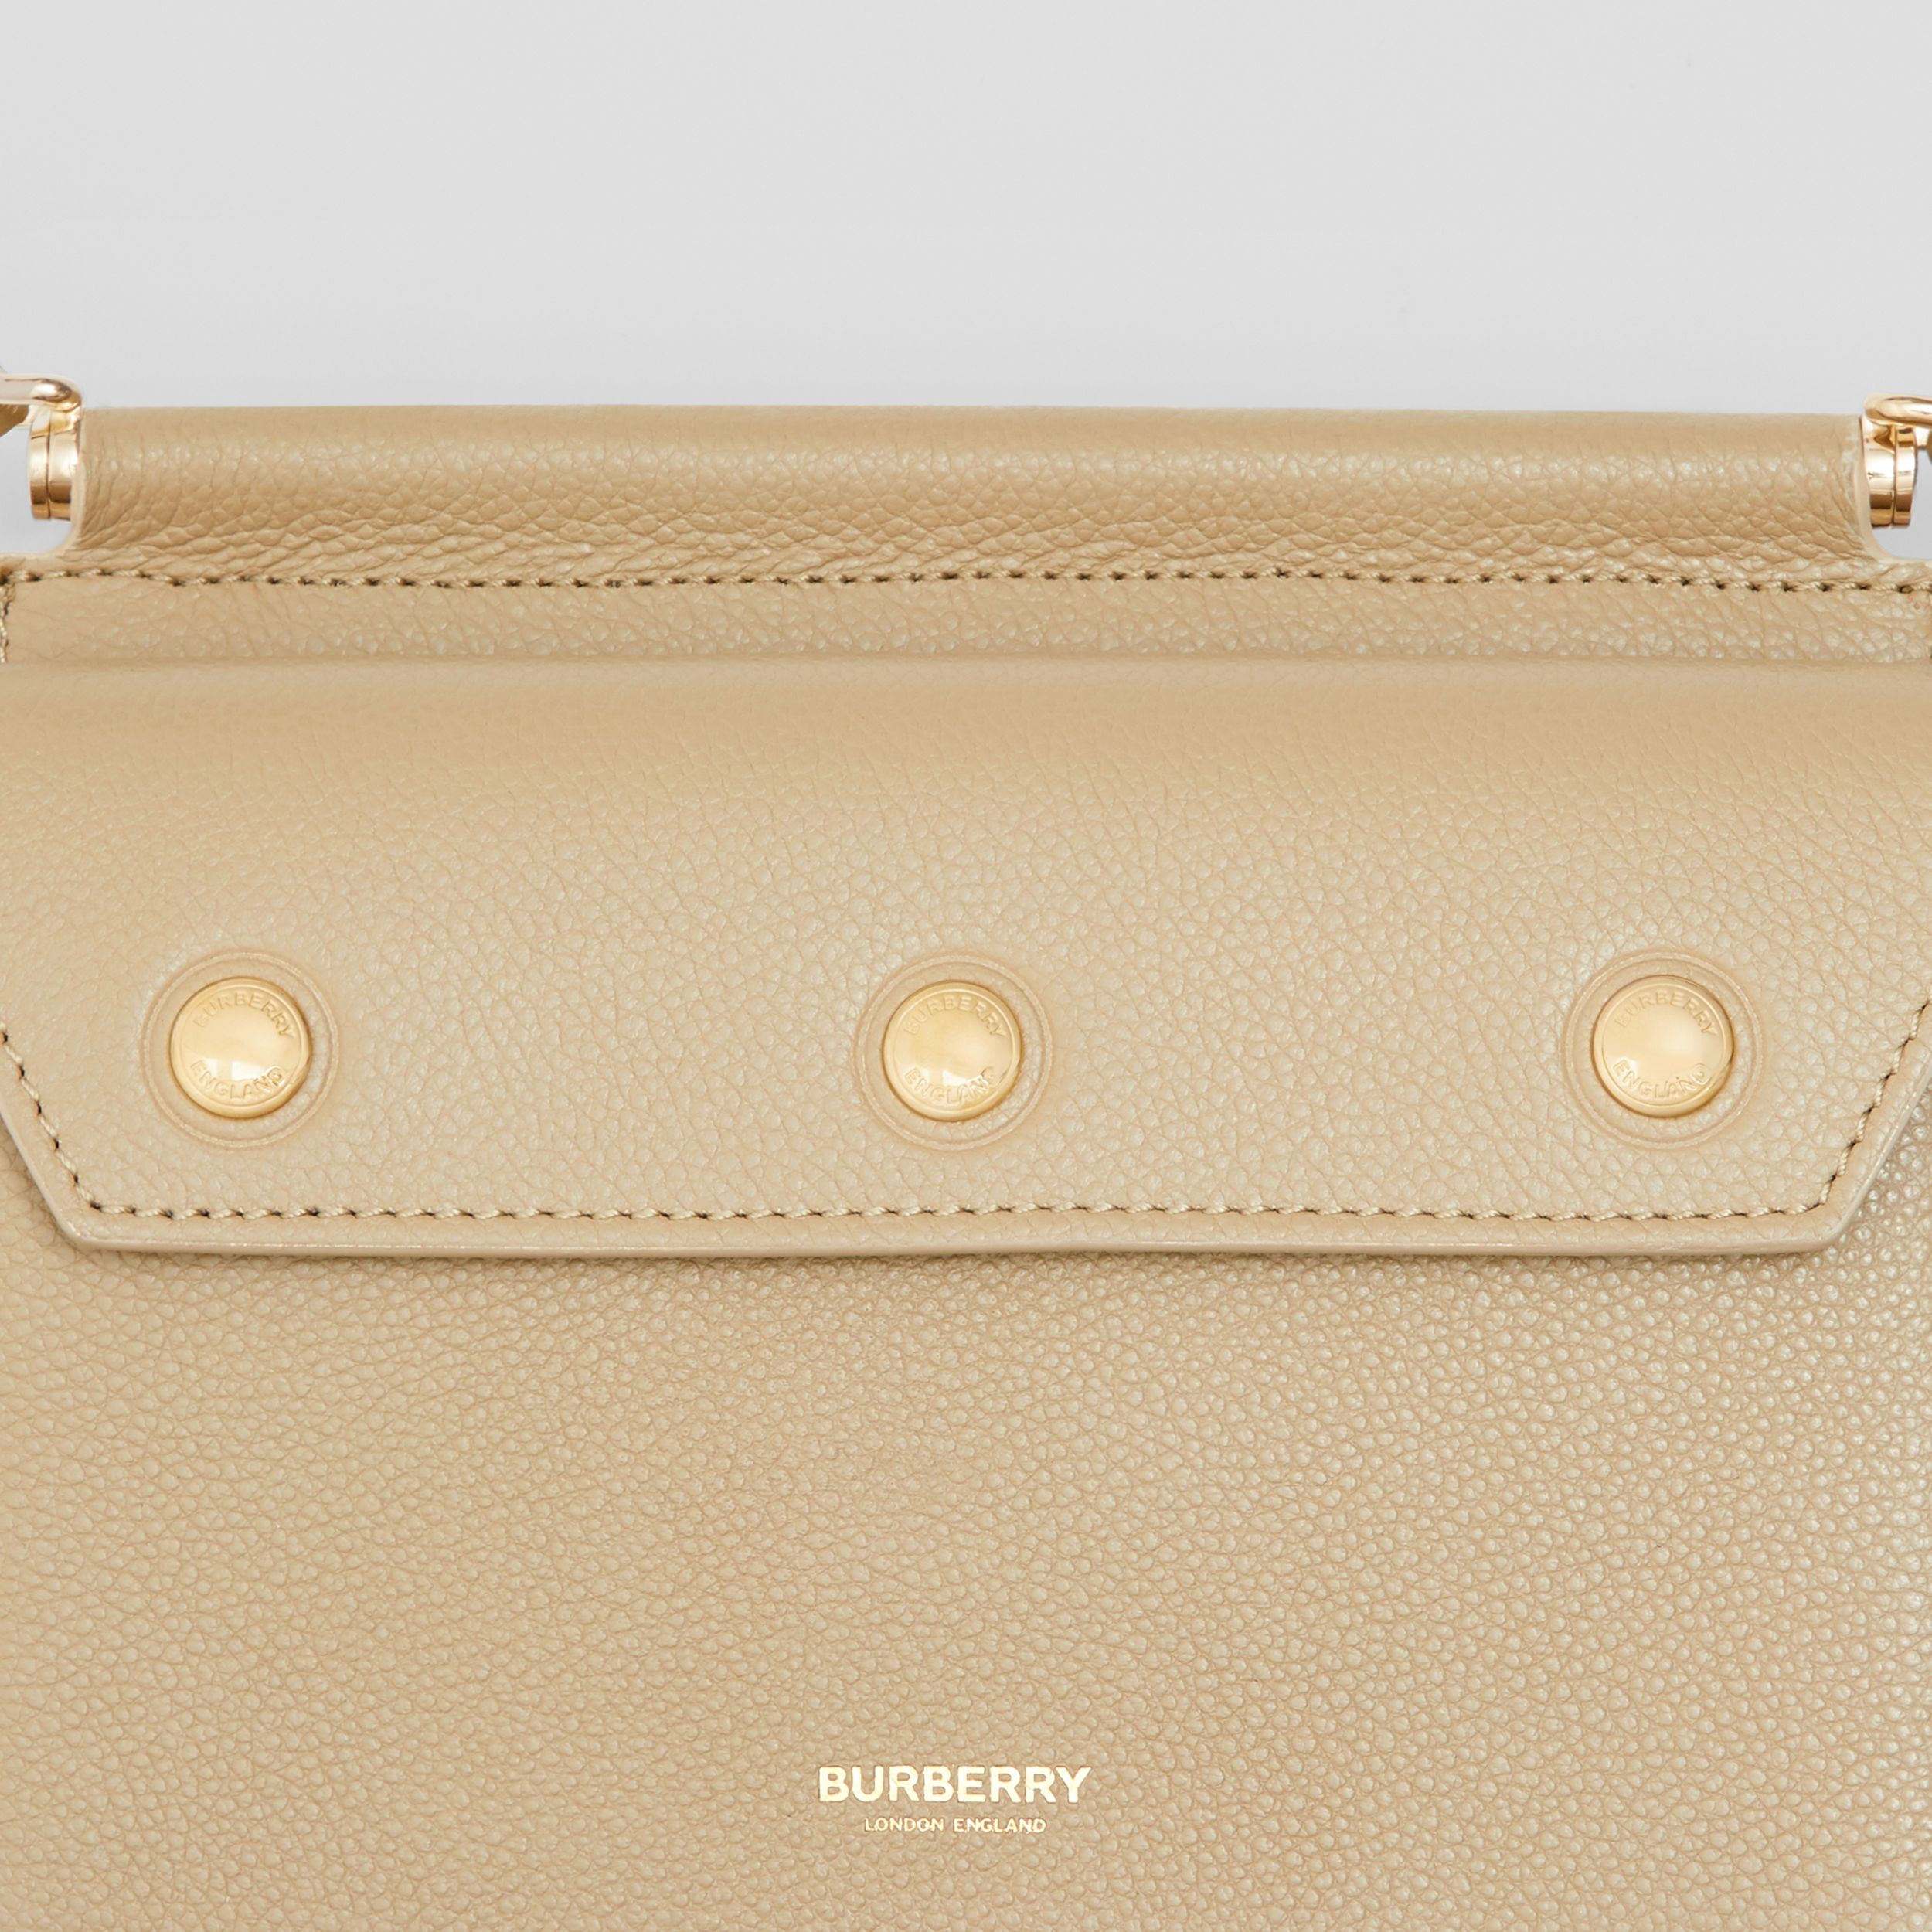 Mini Leather Title Bag with Pocket Detail in Honey - Women | Burberry Singapore - 2